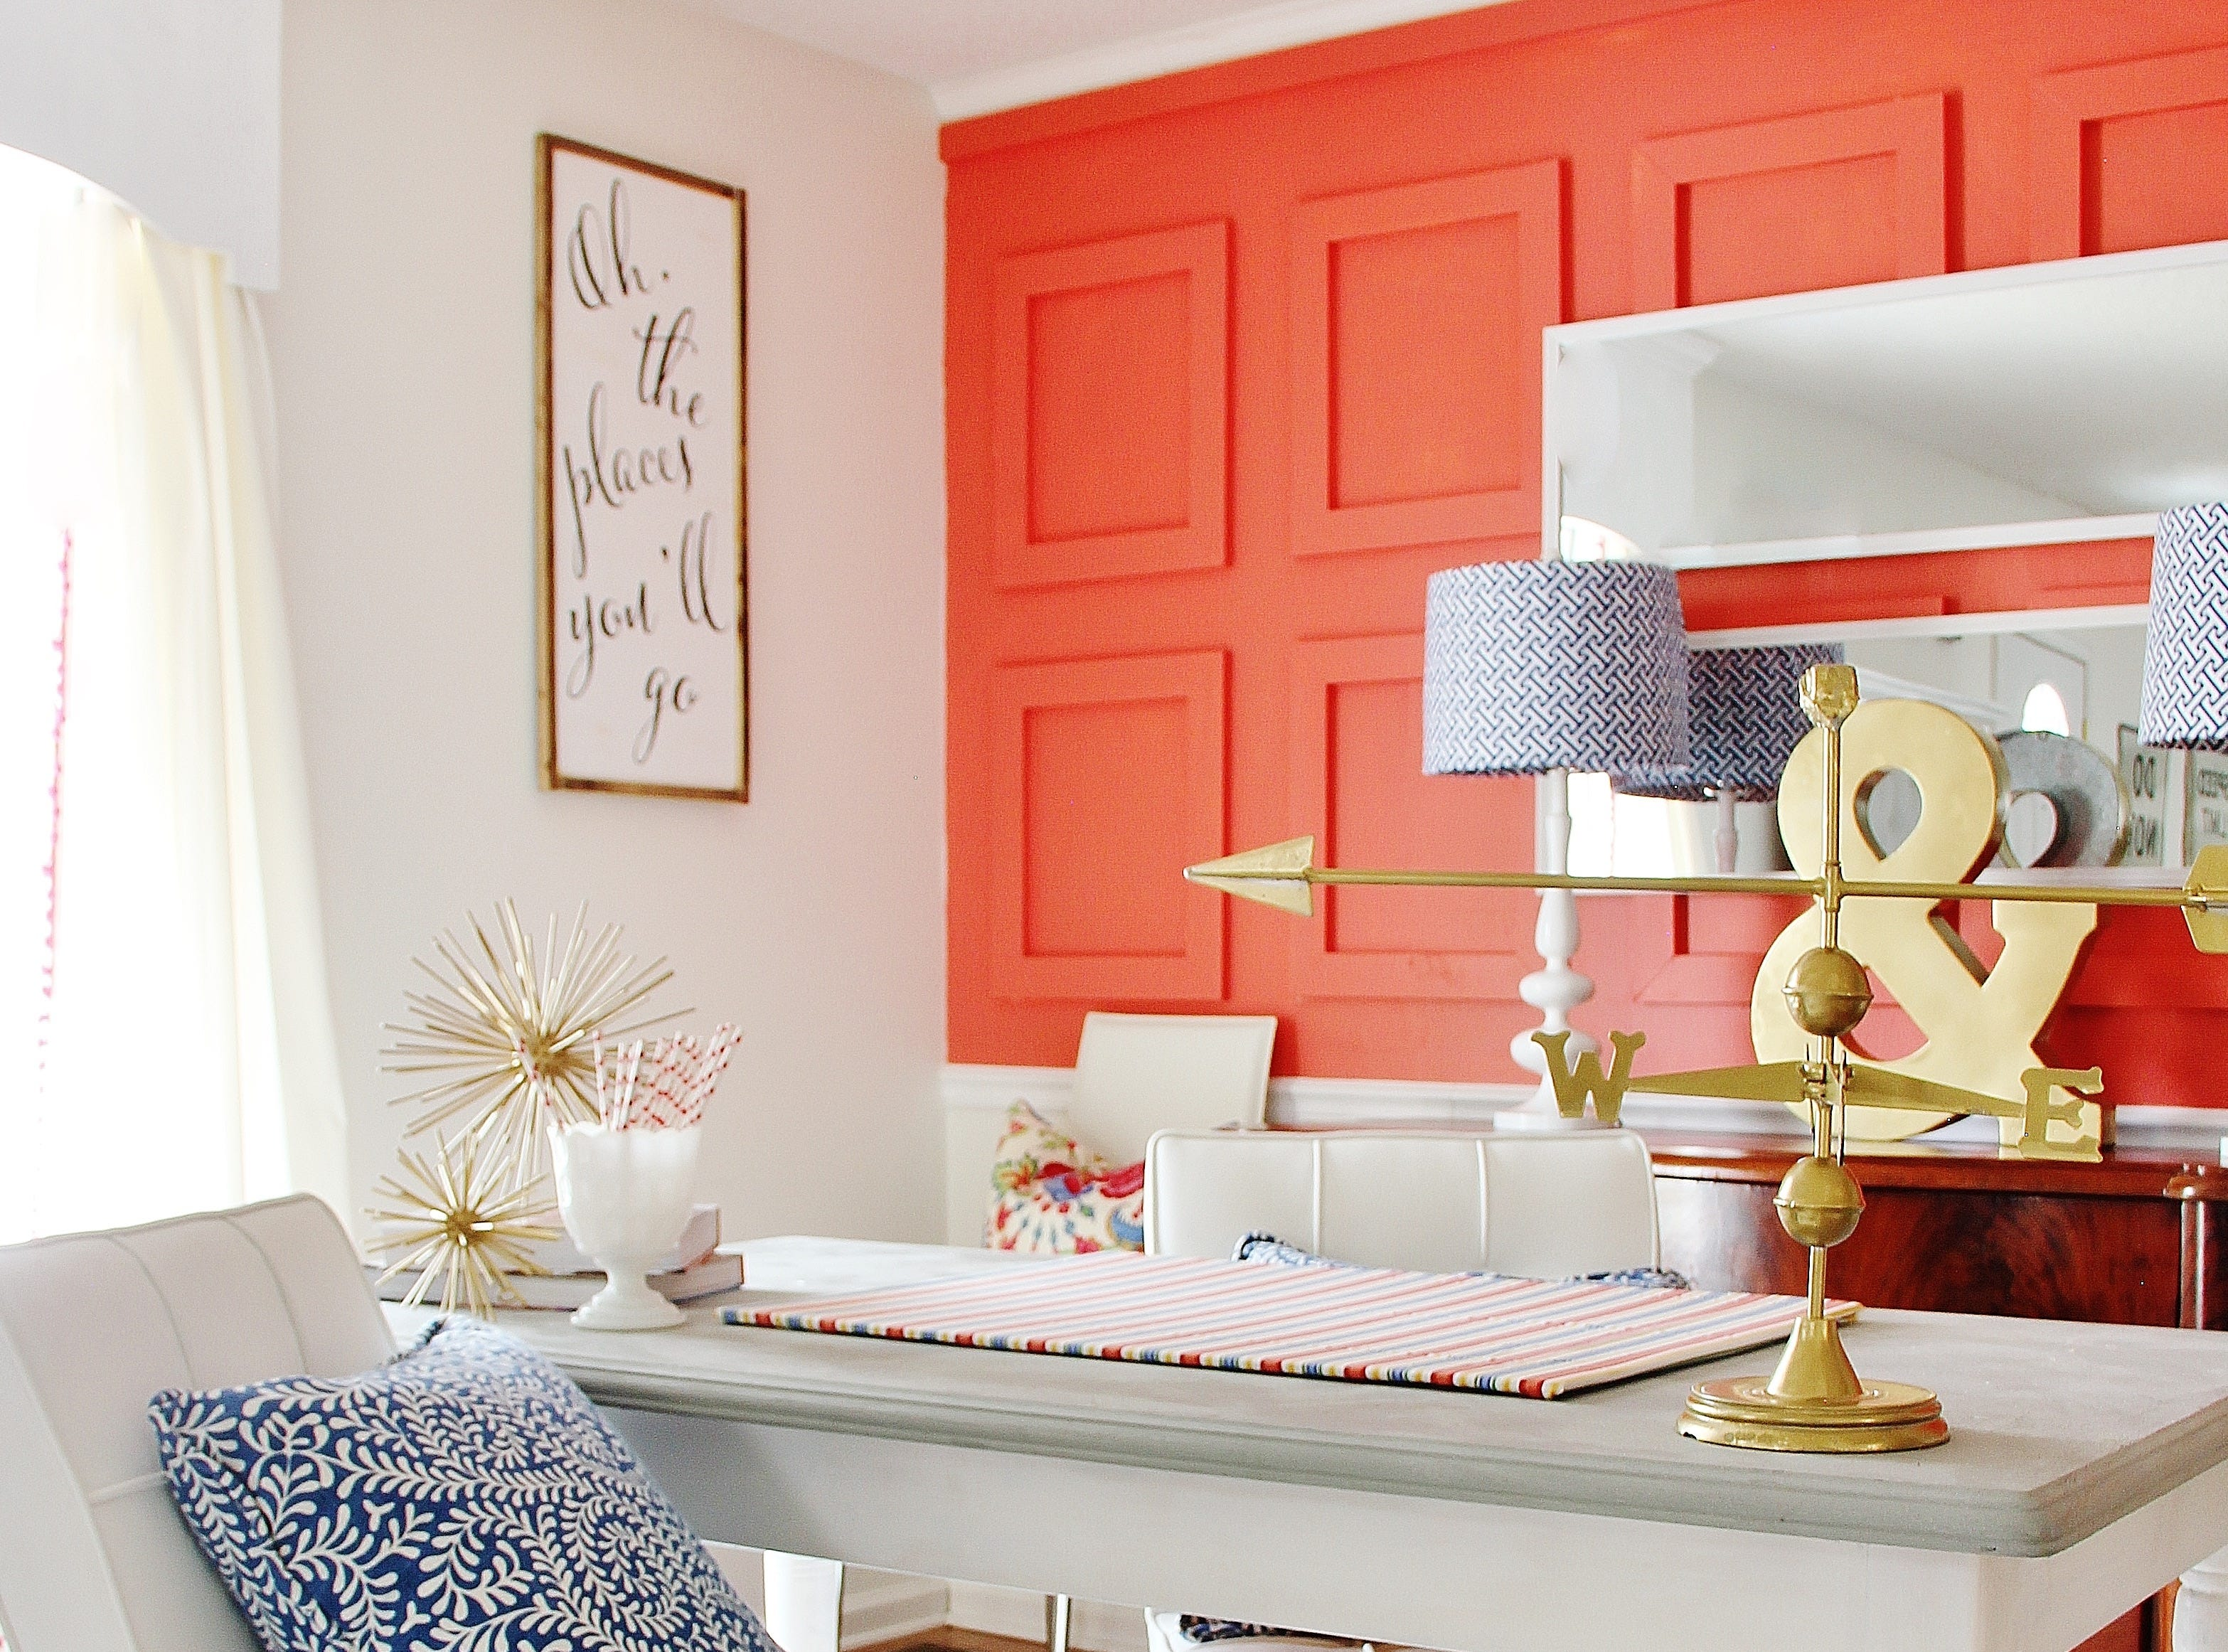 IN: Pantone's Color of the Year for 2019, Living Coral. Picutred is a similar color from Sherwin-Williams, Coral Reef.